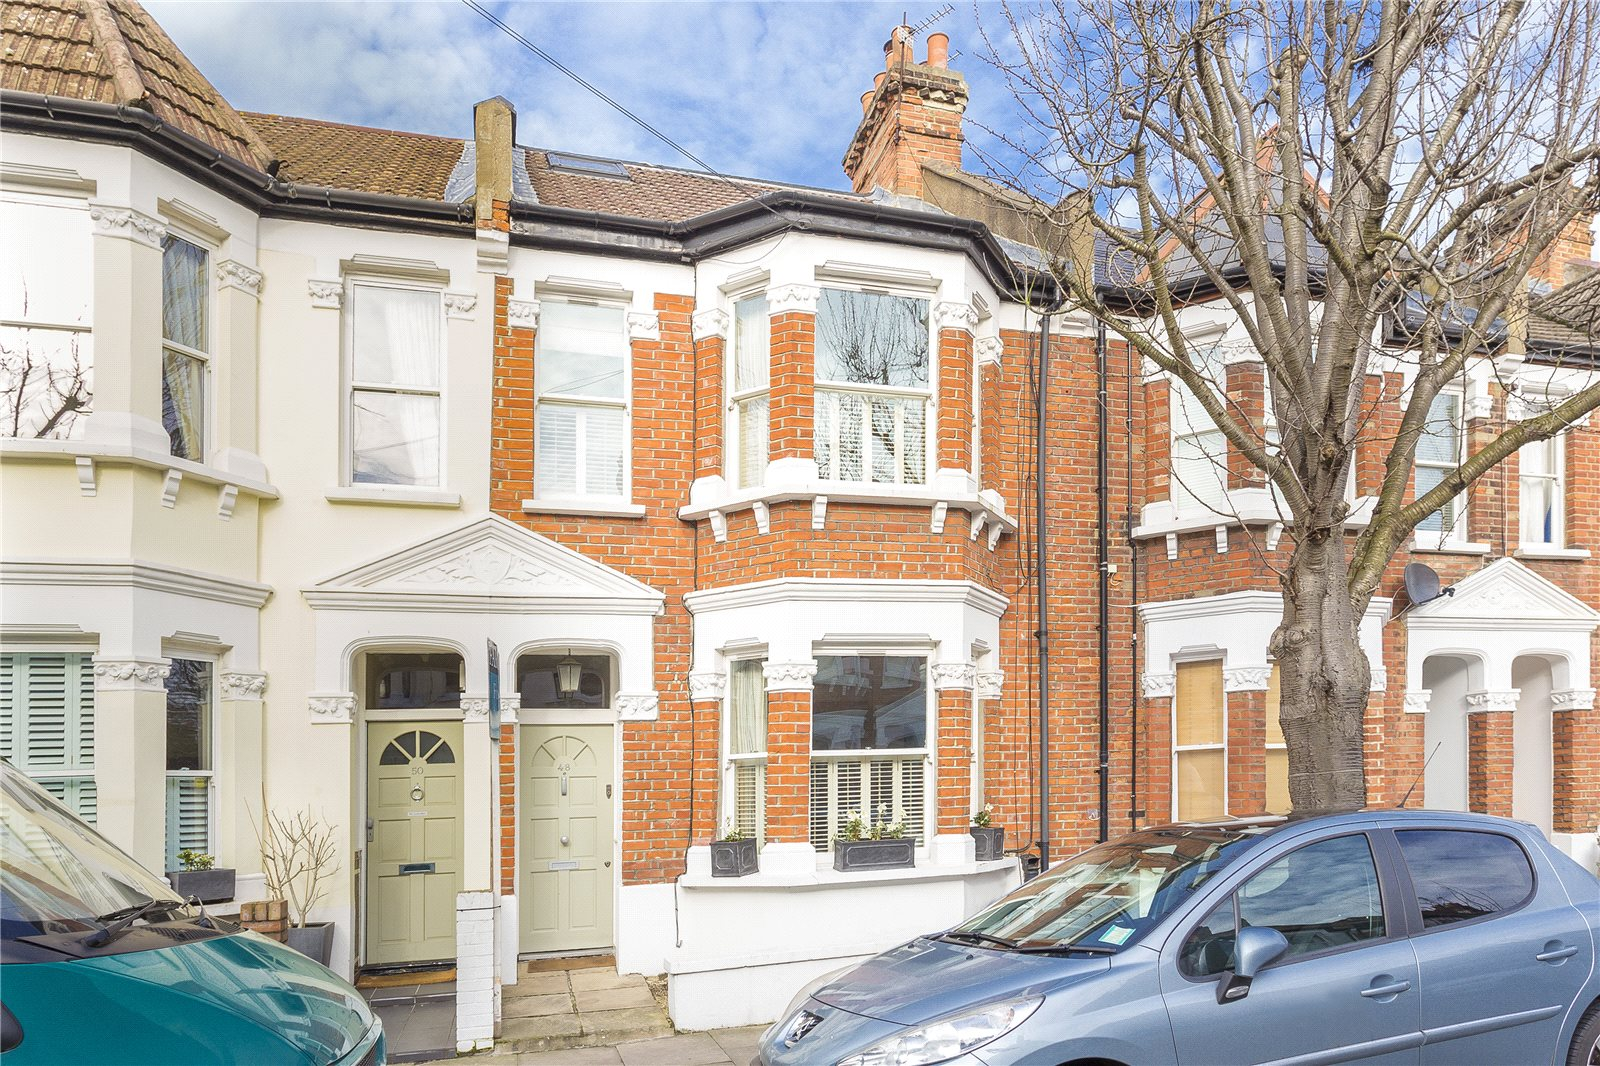 Single Family Home for Sale at Bronsart Road, London, SW6 London, England